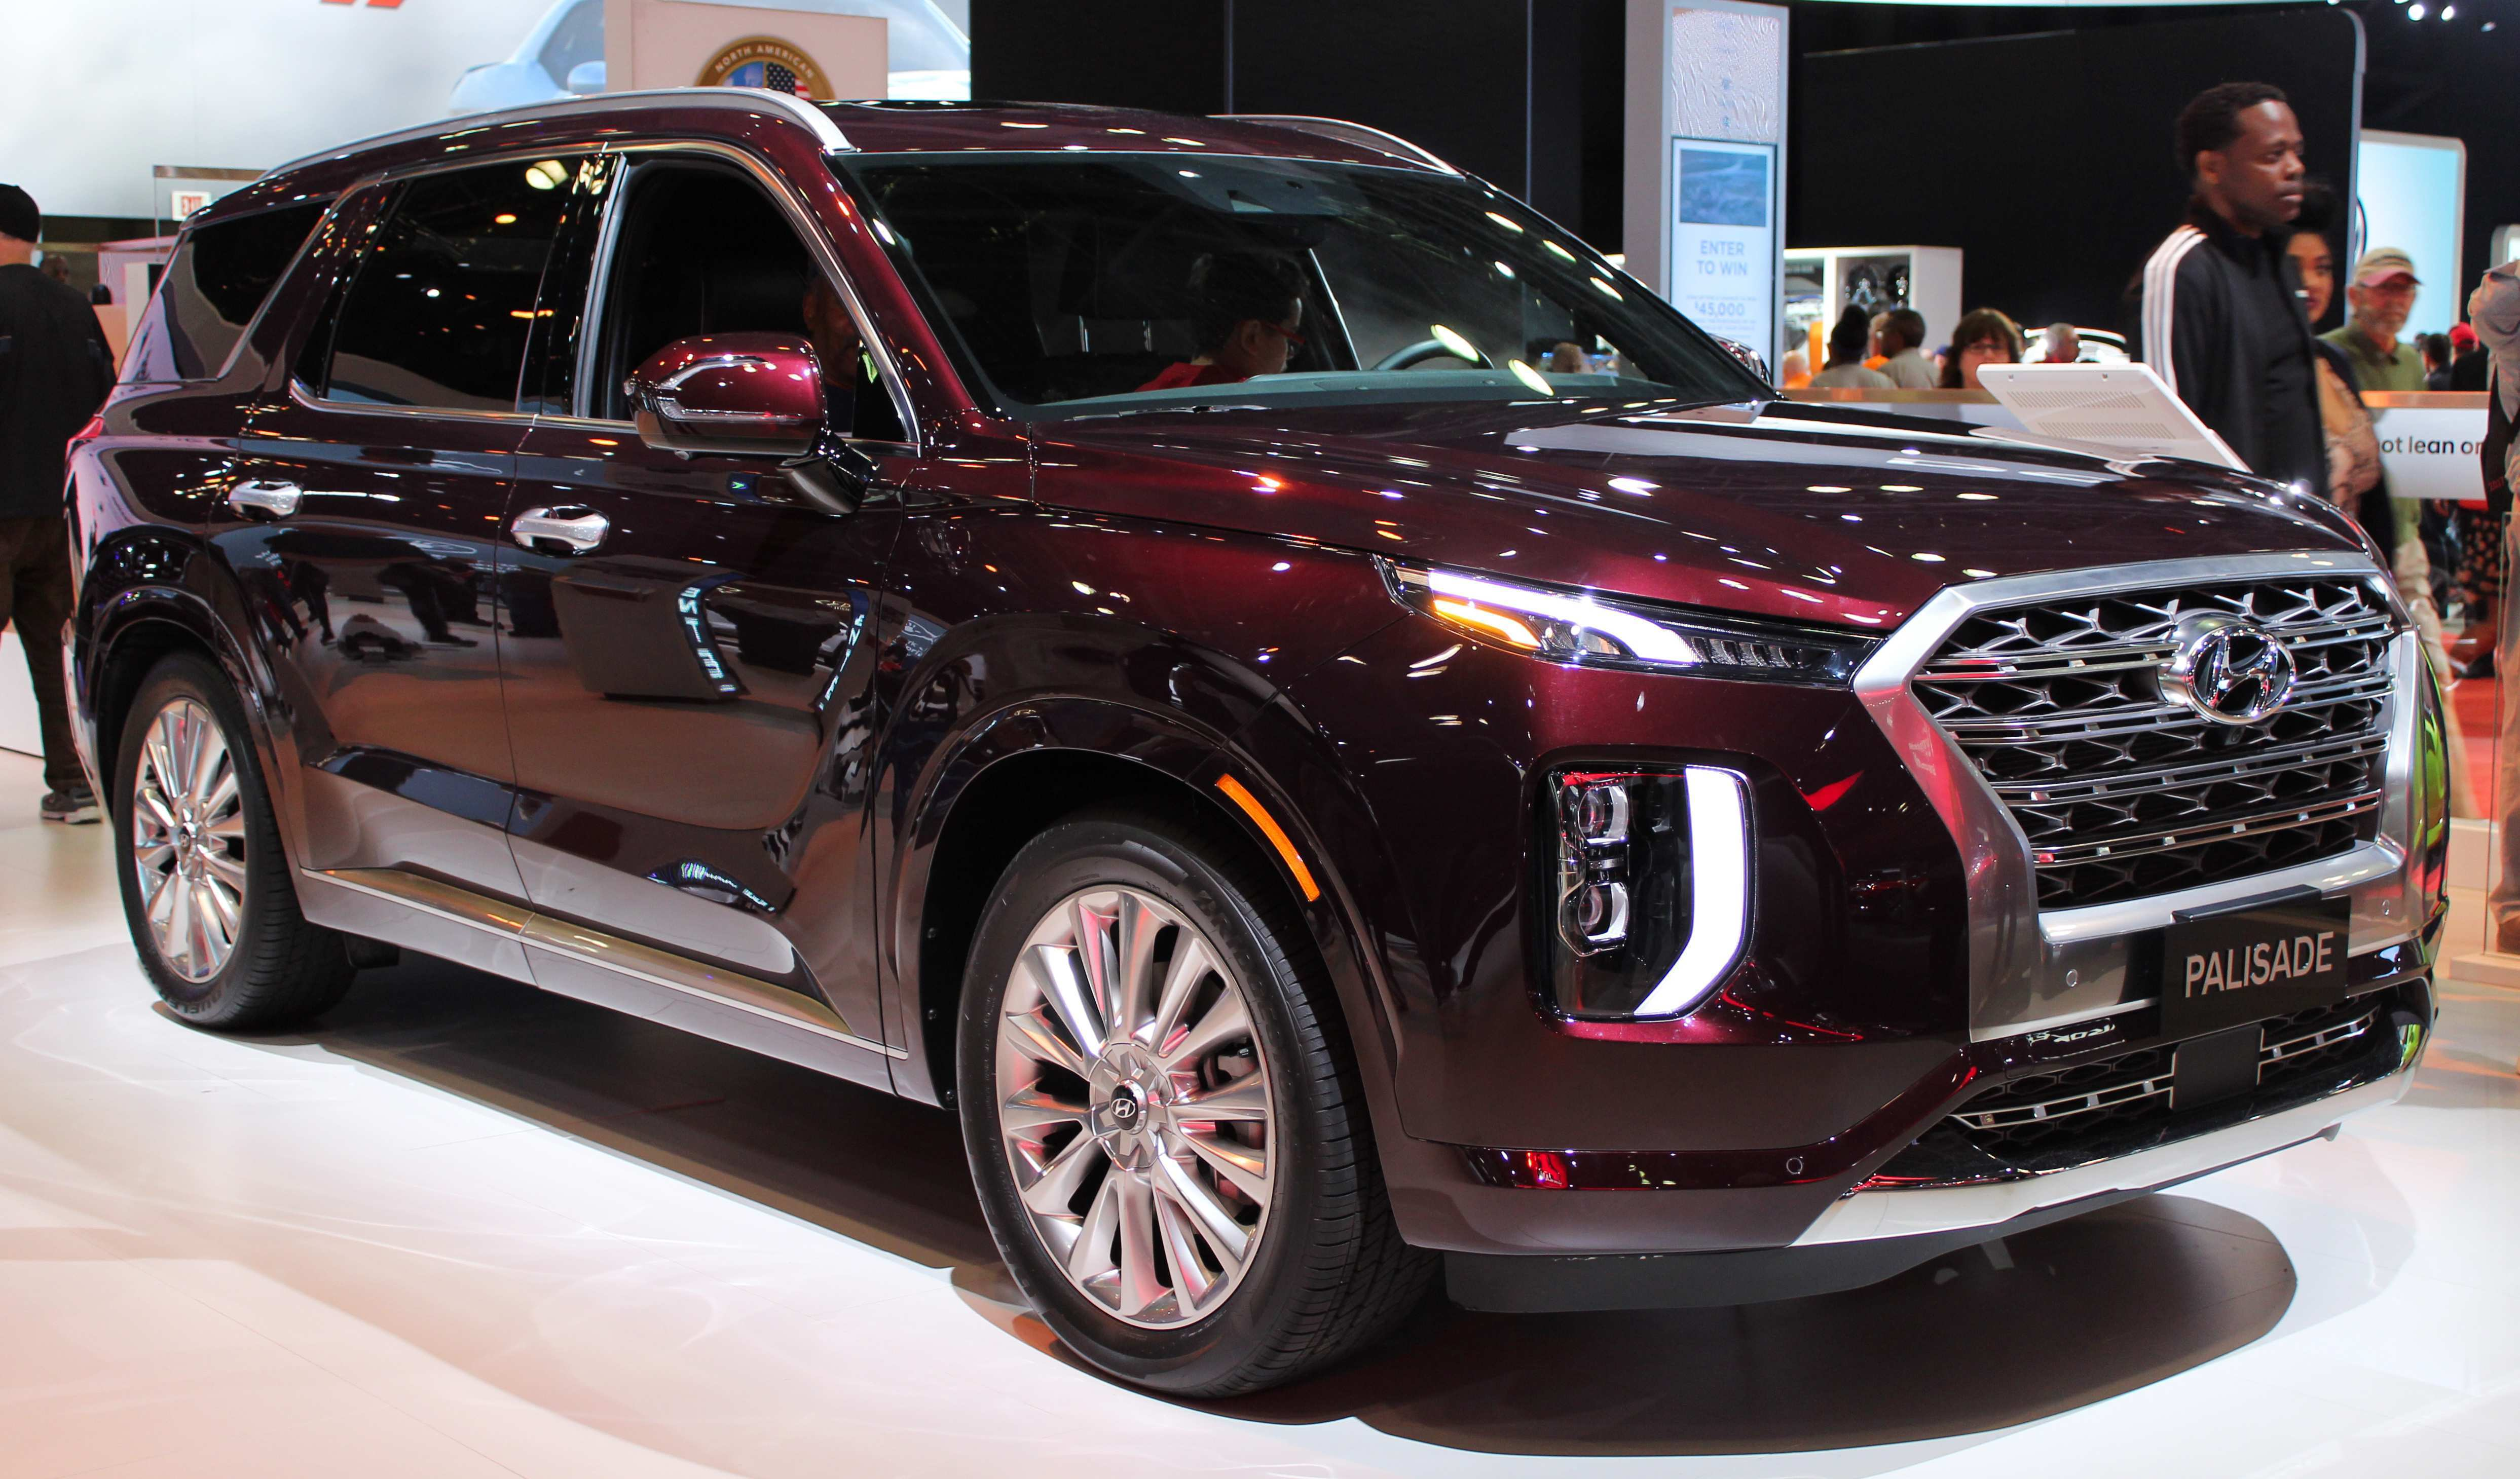 41 New Cost Of 2020 Hyundai Palisade Release